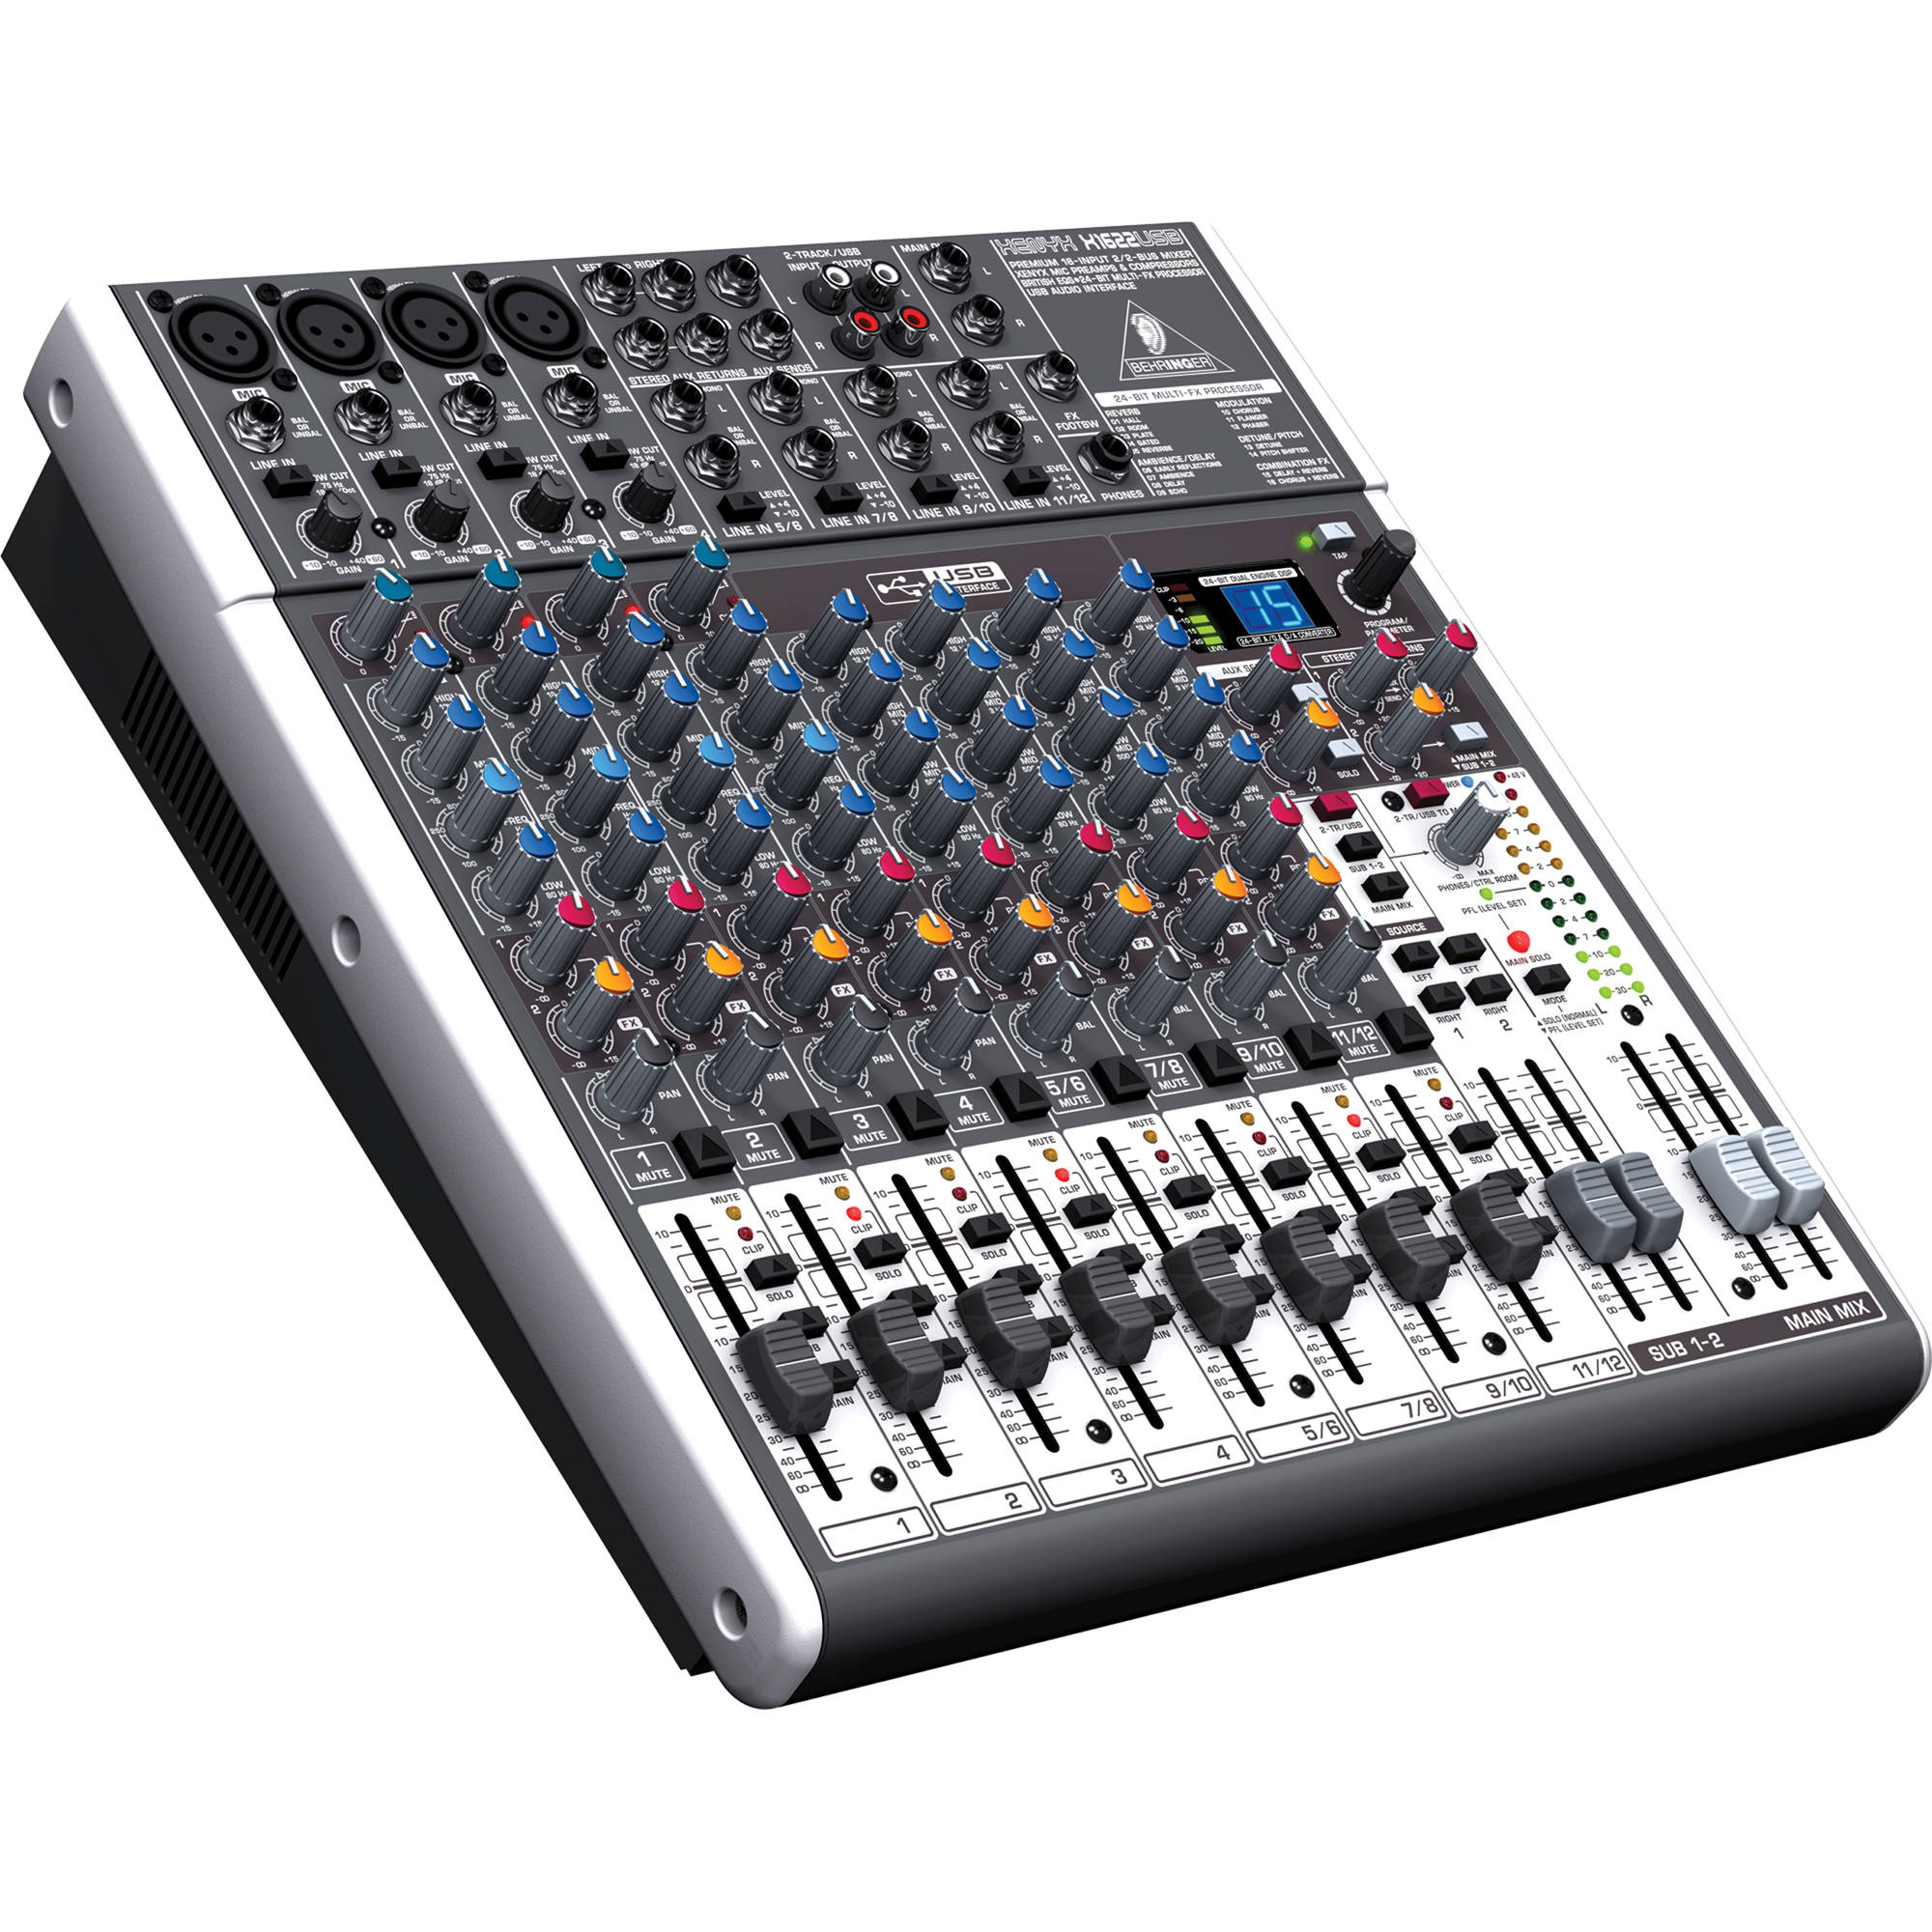 behringer xenyx x1622usb 16 input usb audio mixer with effects. Black Bedroom Furniture Sets. Home Design Ideas